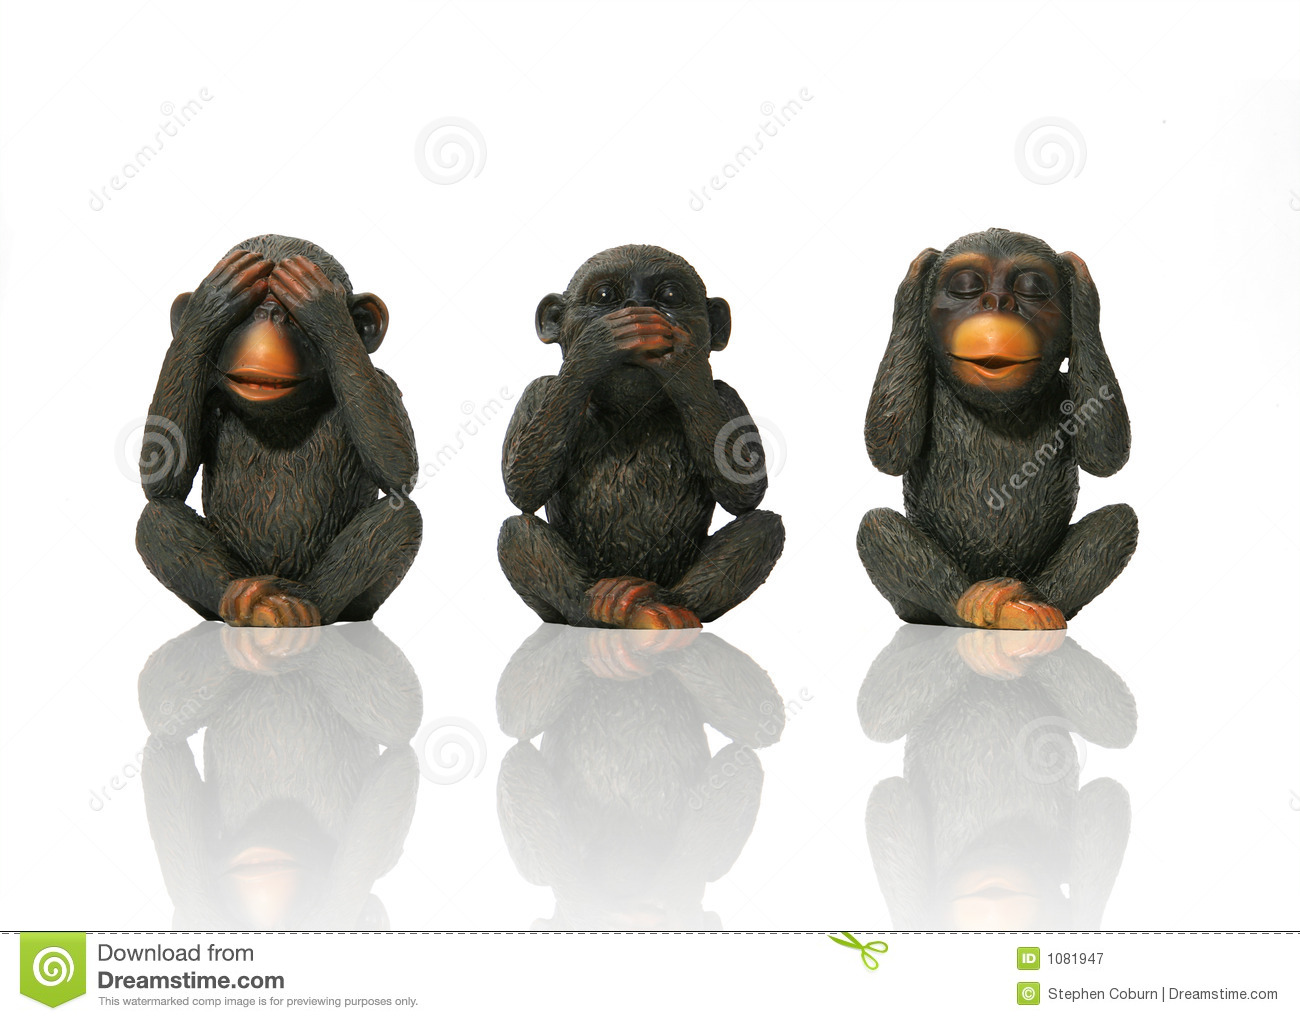 Free Stock Photography  See No Evil  Speak No Evil  Hear No EvilSee No Evil Hear No Evil Speak No Evil